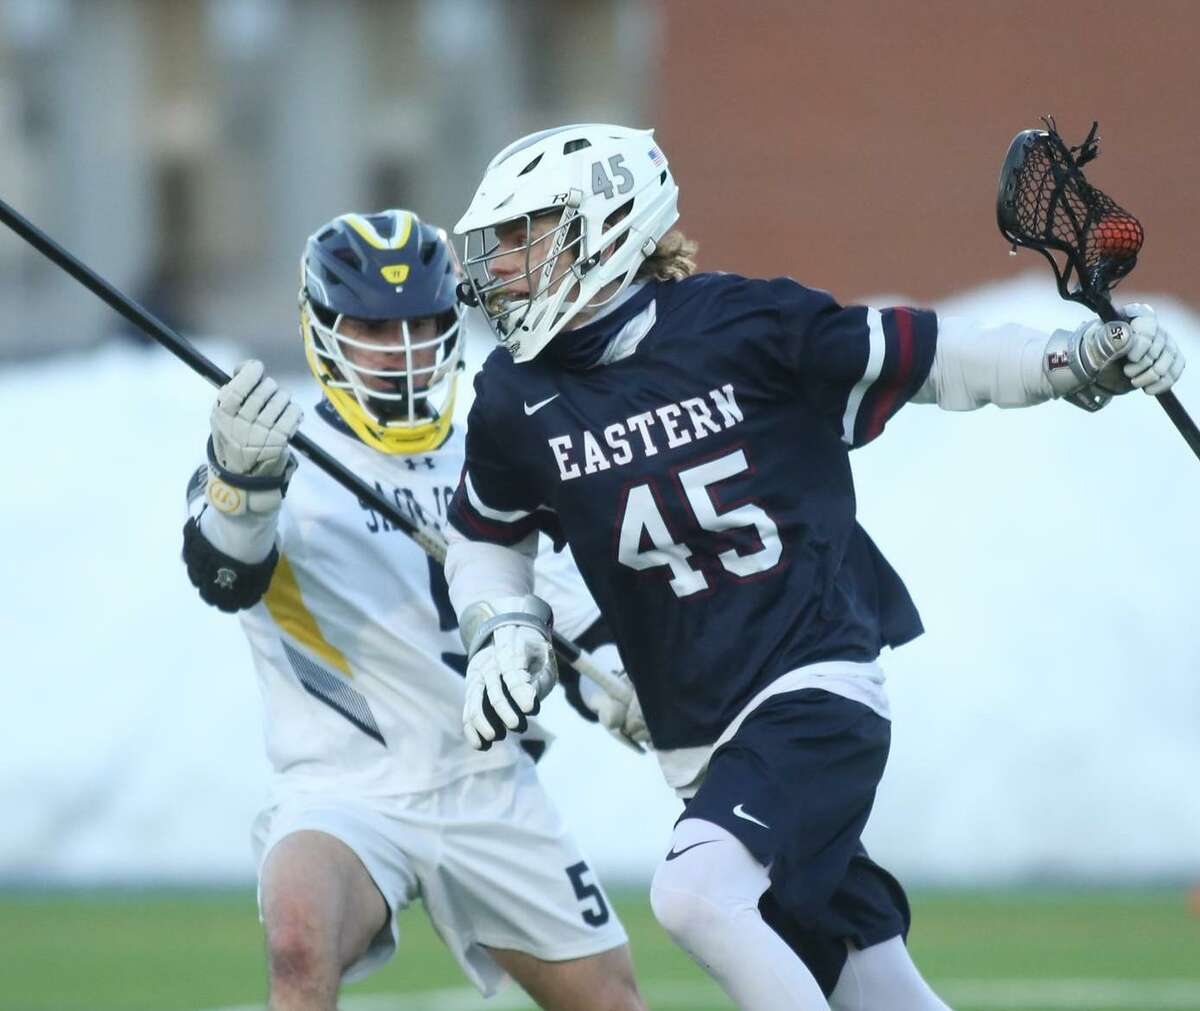 Jake Leibowitz is a returning starter for coach Marc Graham at Eastern Connecticut State University.